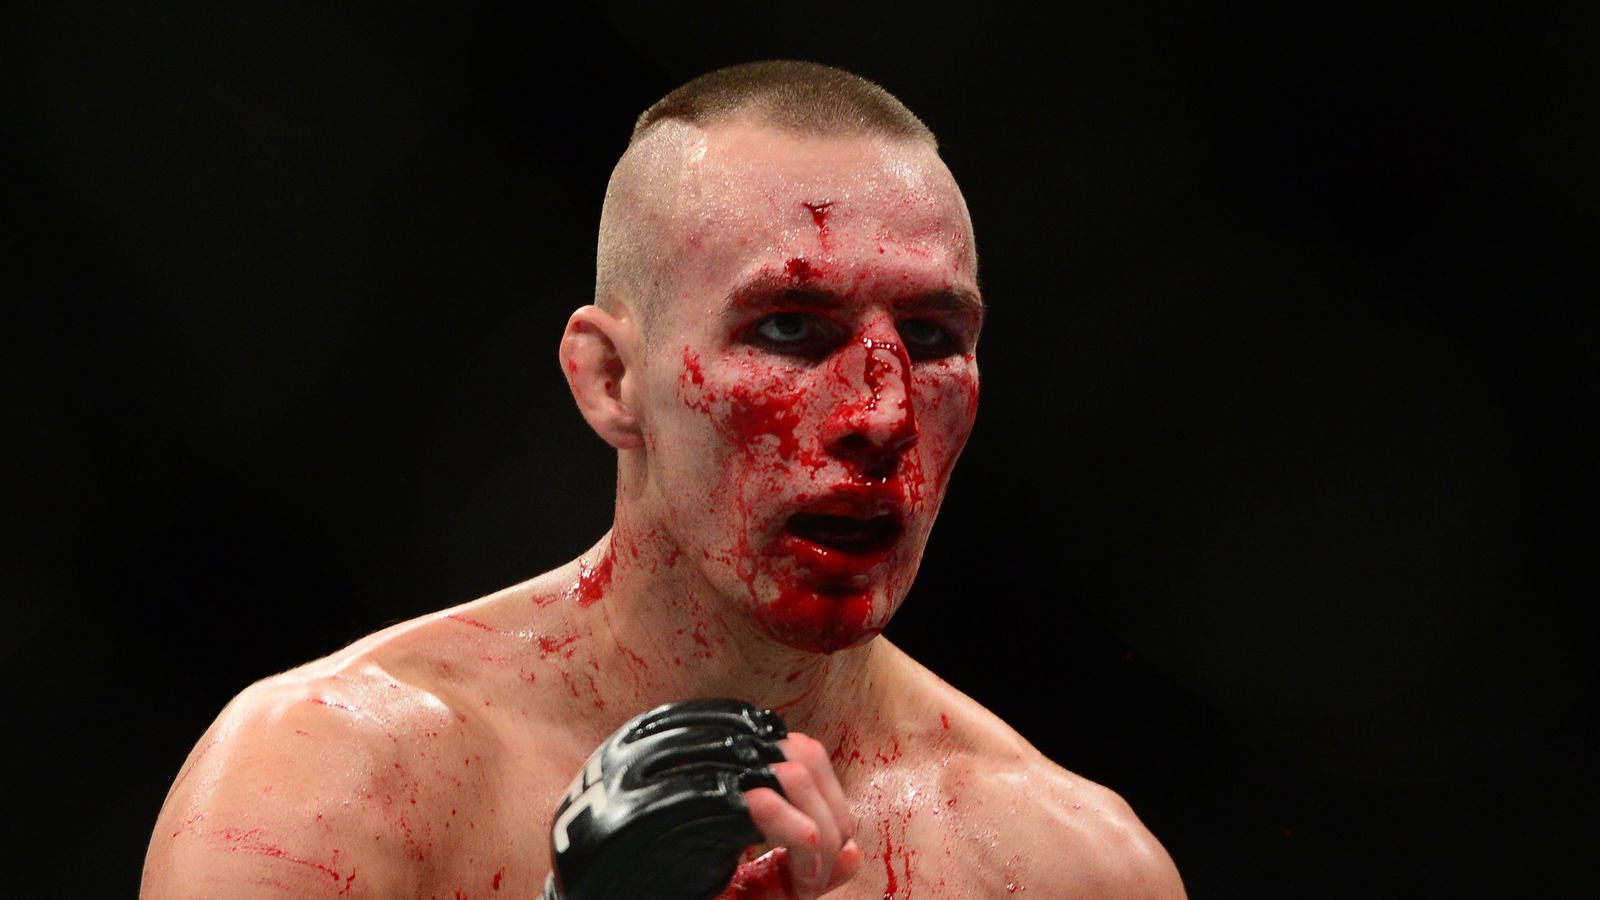 ... MacDonald vs. Hector Lombard being discussed for 2016 - Bloody Elbow